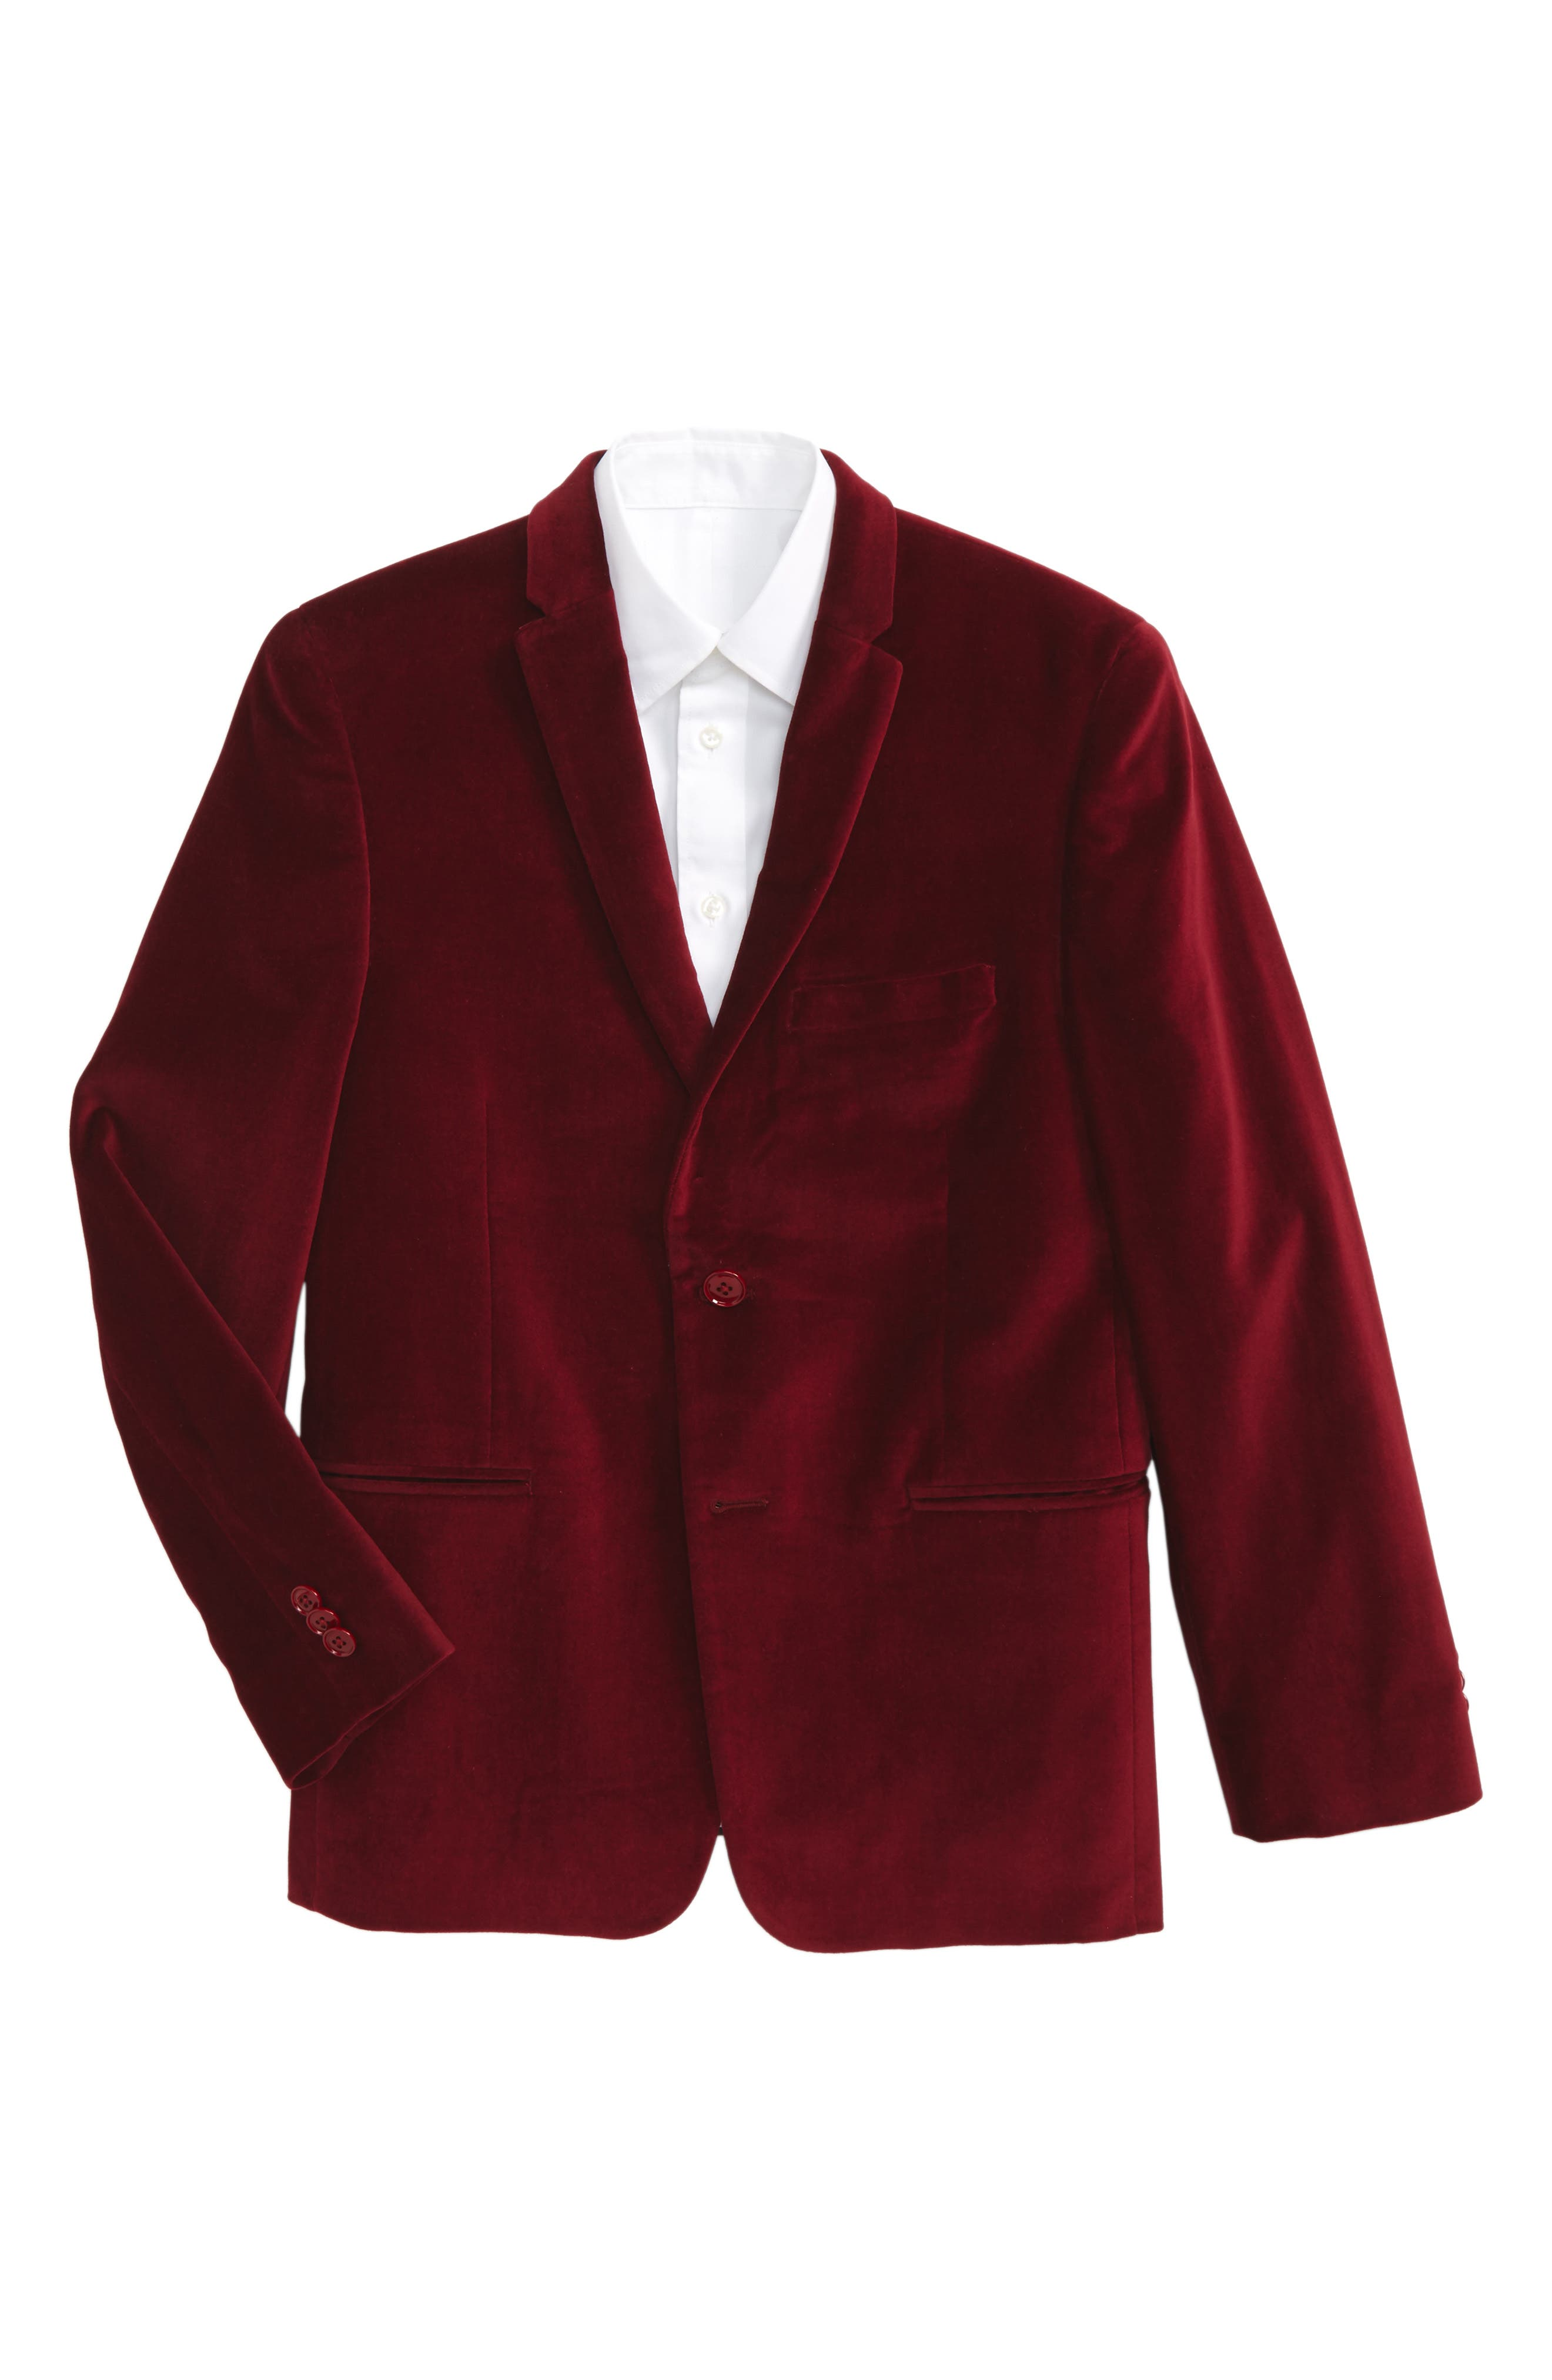 Main Image - Michael Kors Velvet Blazer (Big Boys)